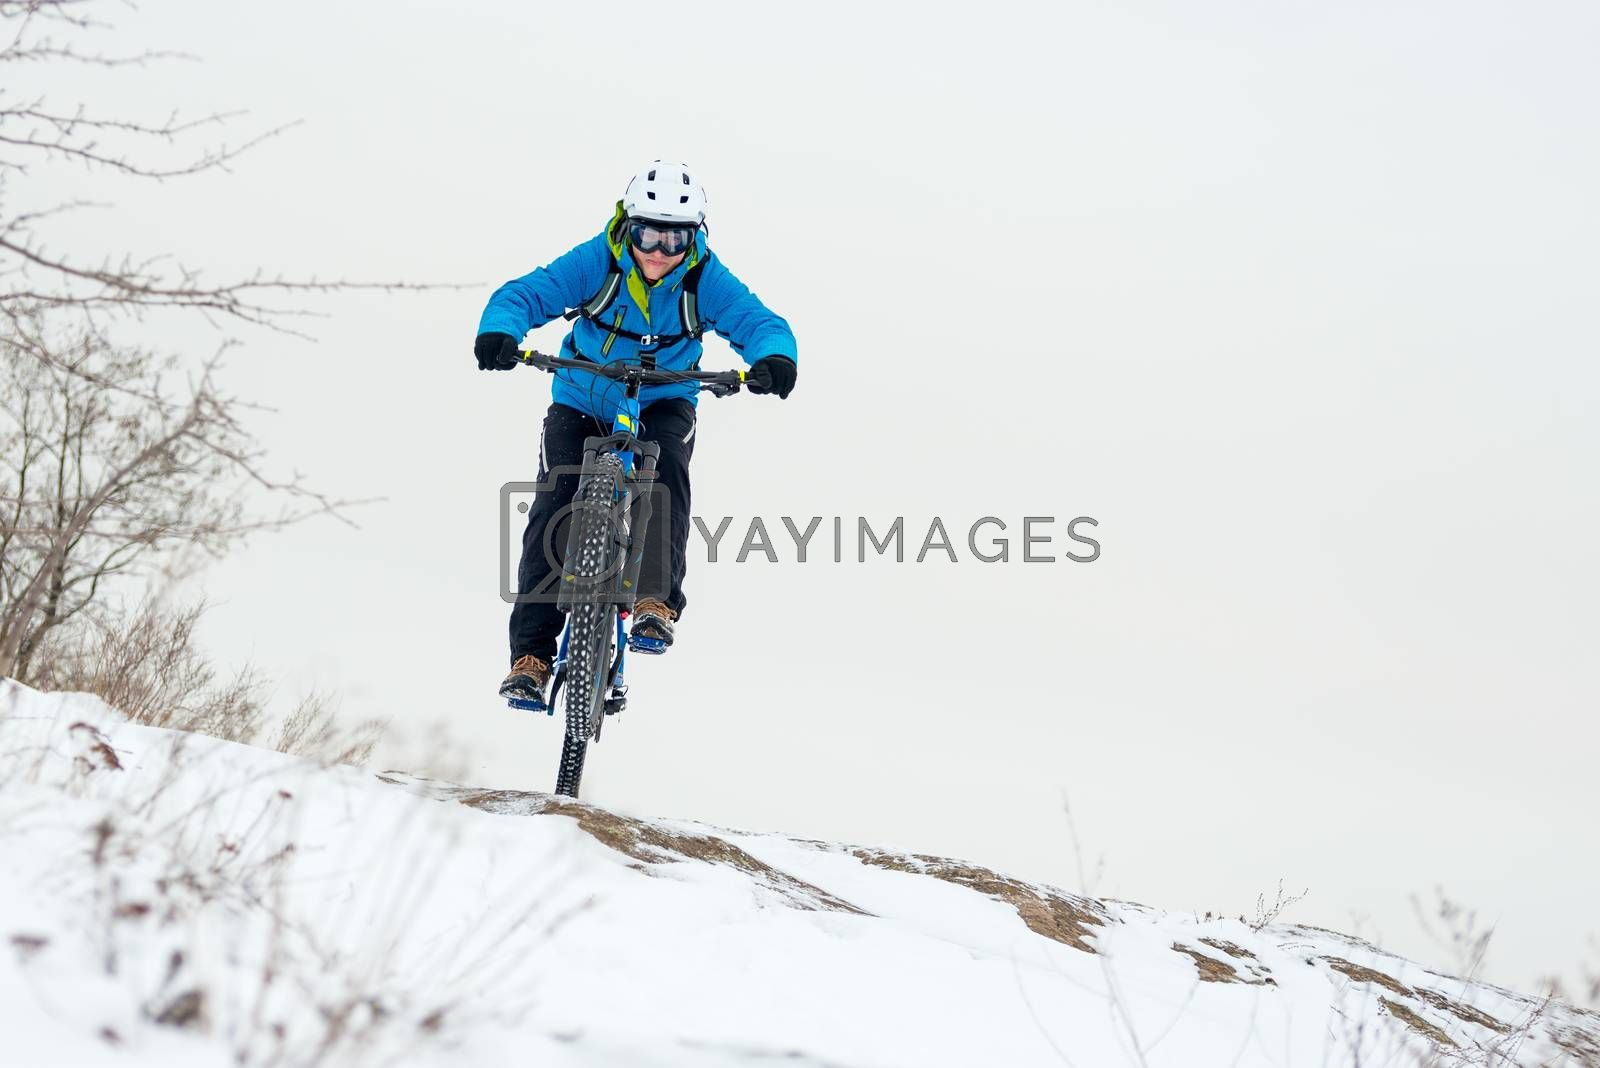 Cyclist in Blue Riding Mountain Bike on Rocky Winter Hill Covered with Snow. Extreme Sport and Enduro Biking Concept. by maxpro